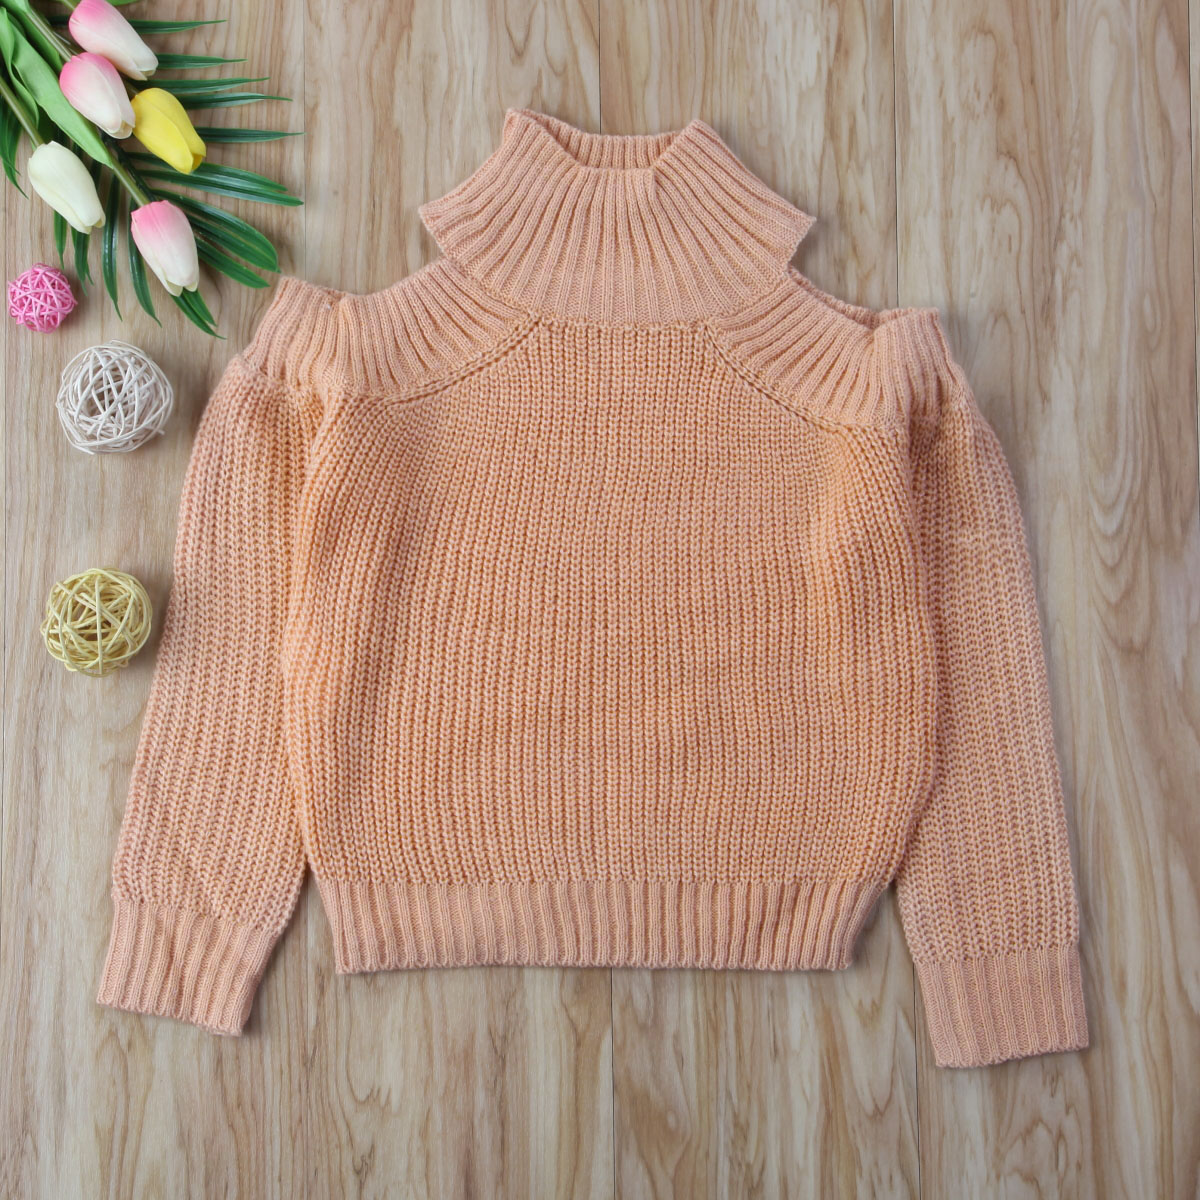 Clothing Sweater Knitwear Long-Sleeve Tops Off-Shoulder